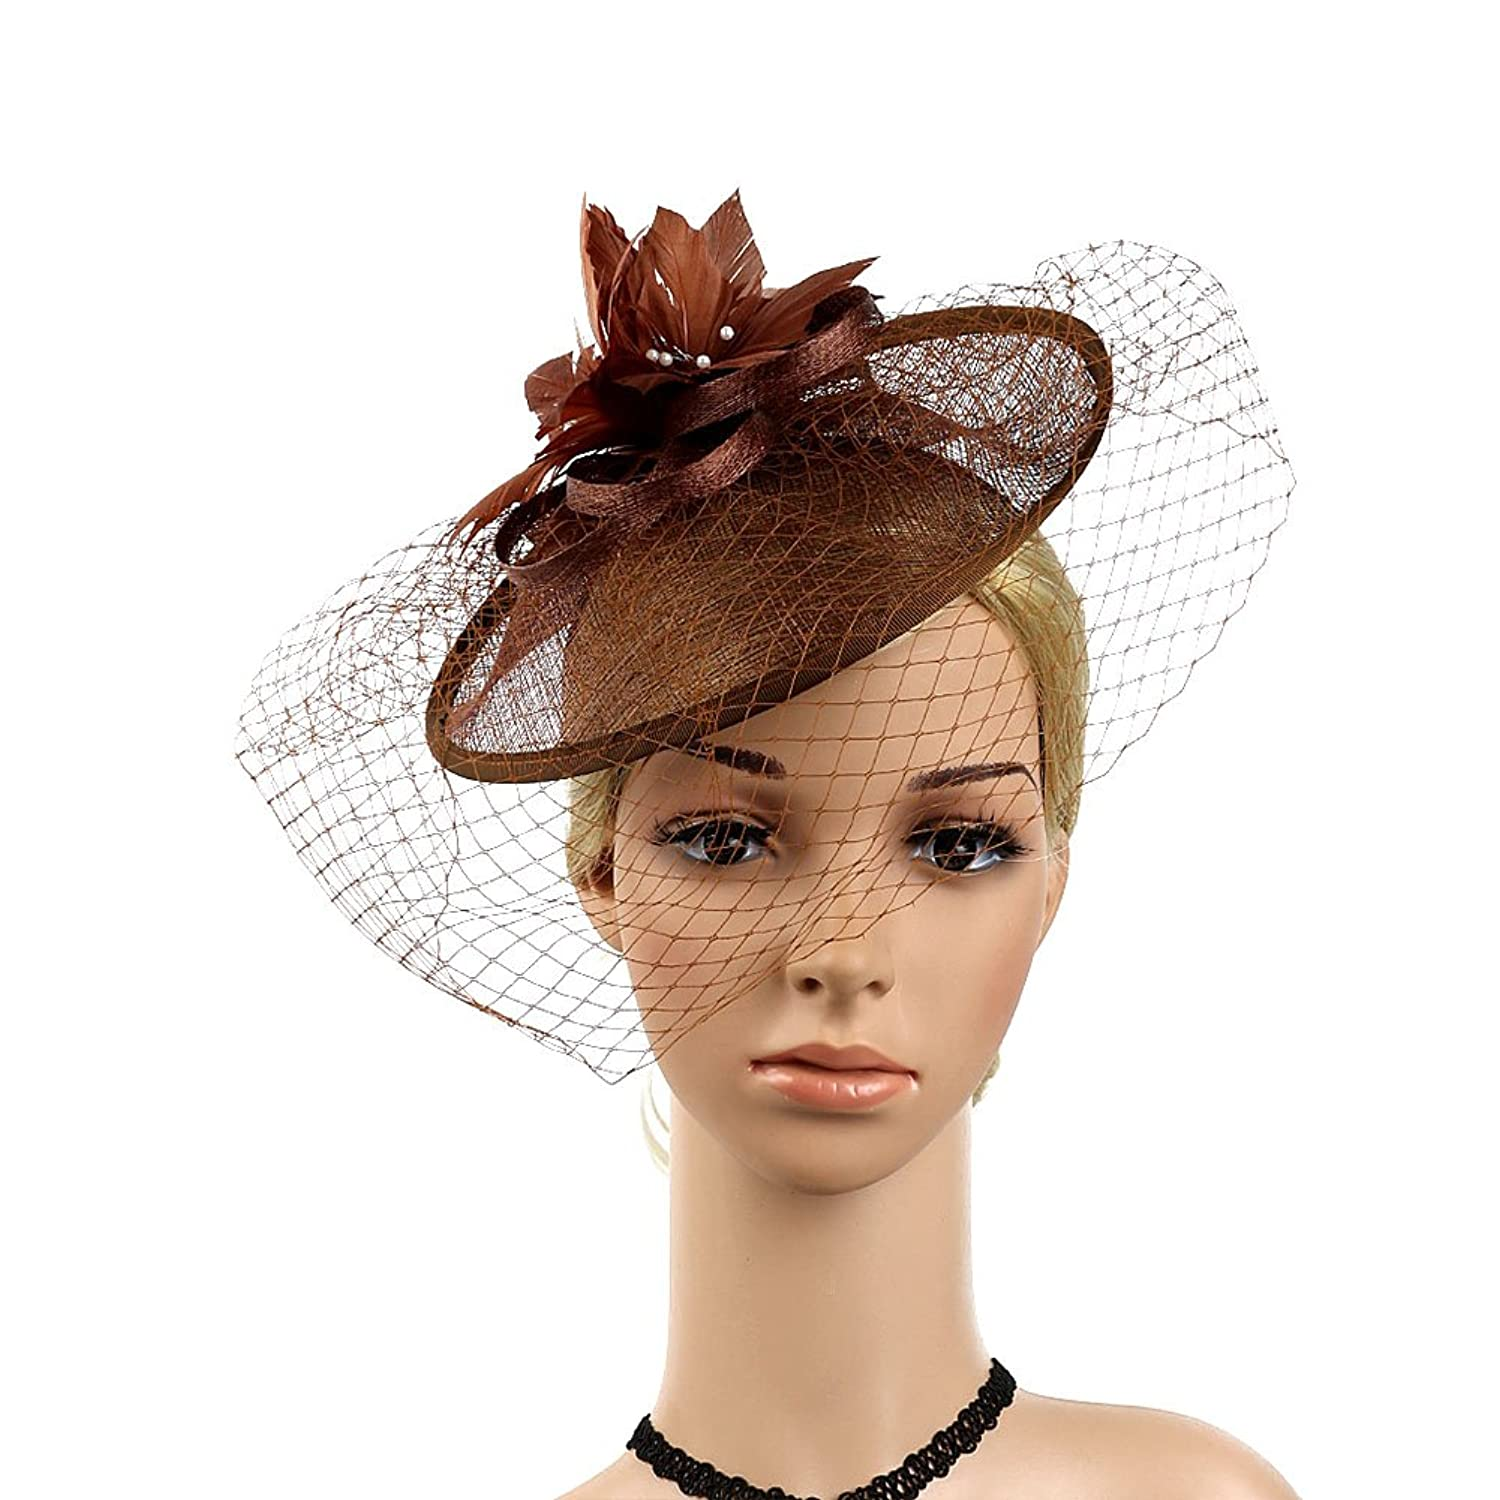 Ztl Women's Feather Fascinator Pillbox Hats Wedding Tea Party Hats